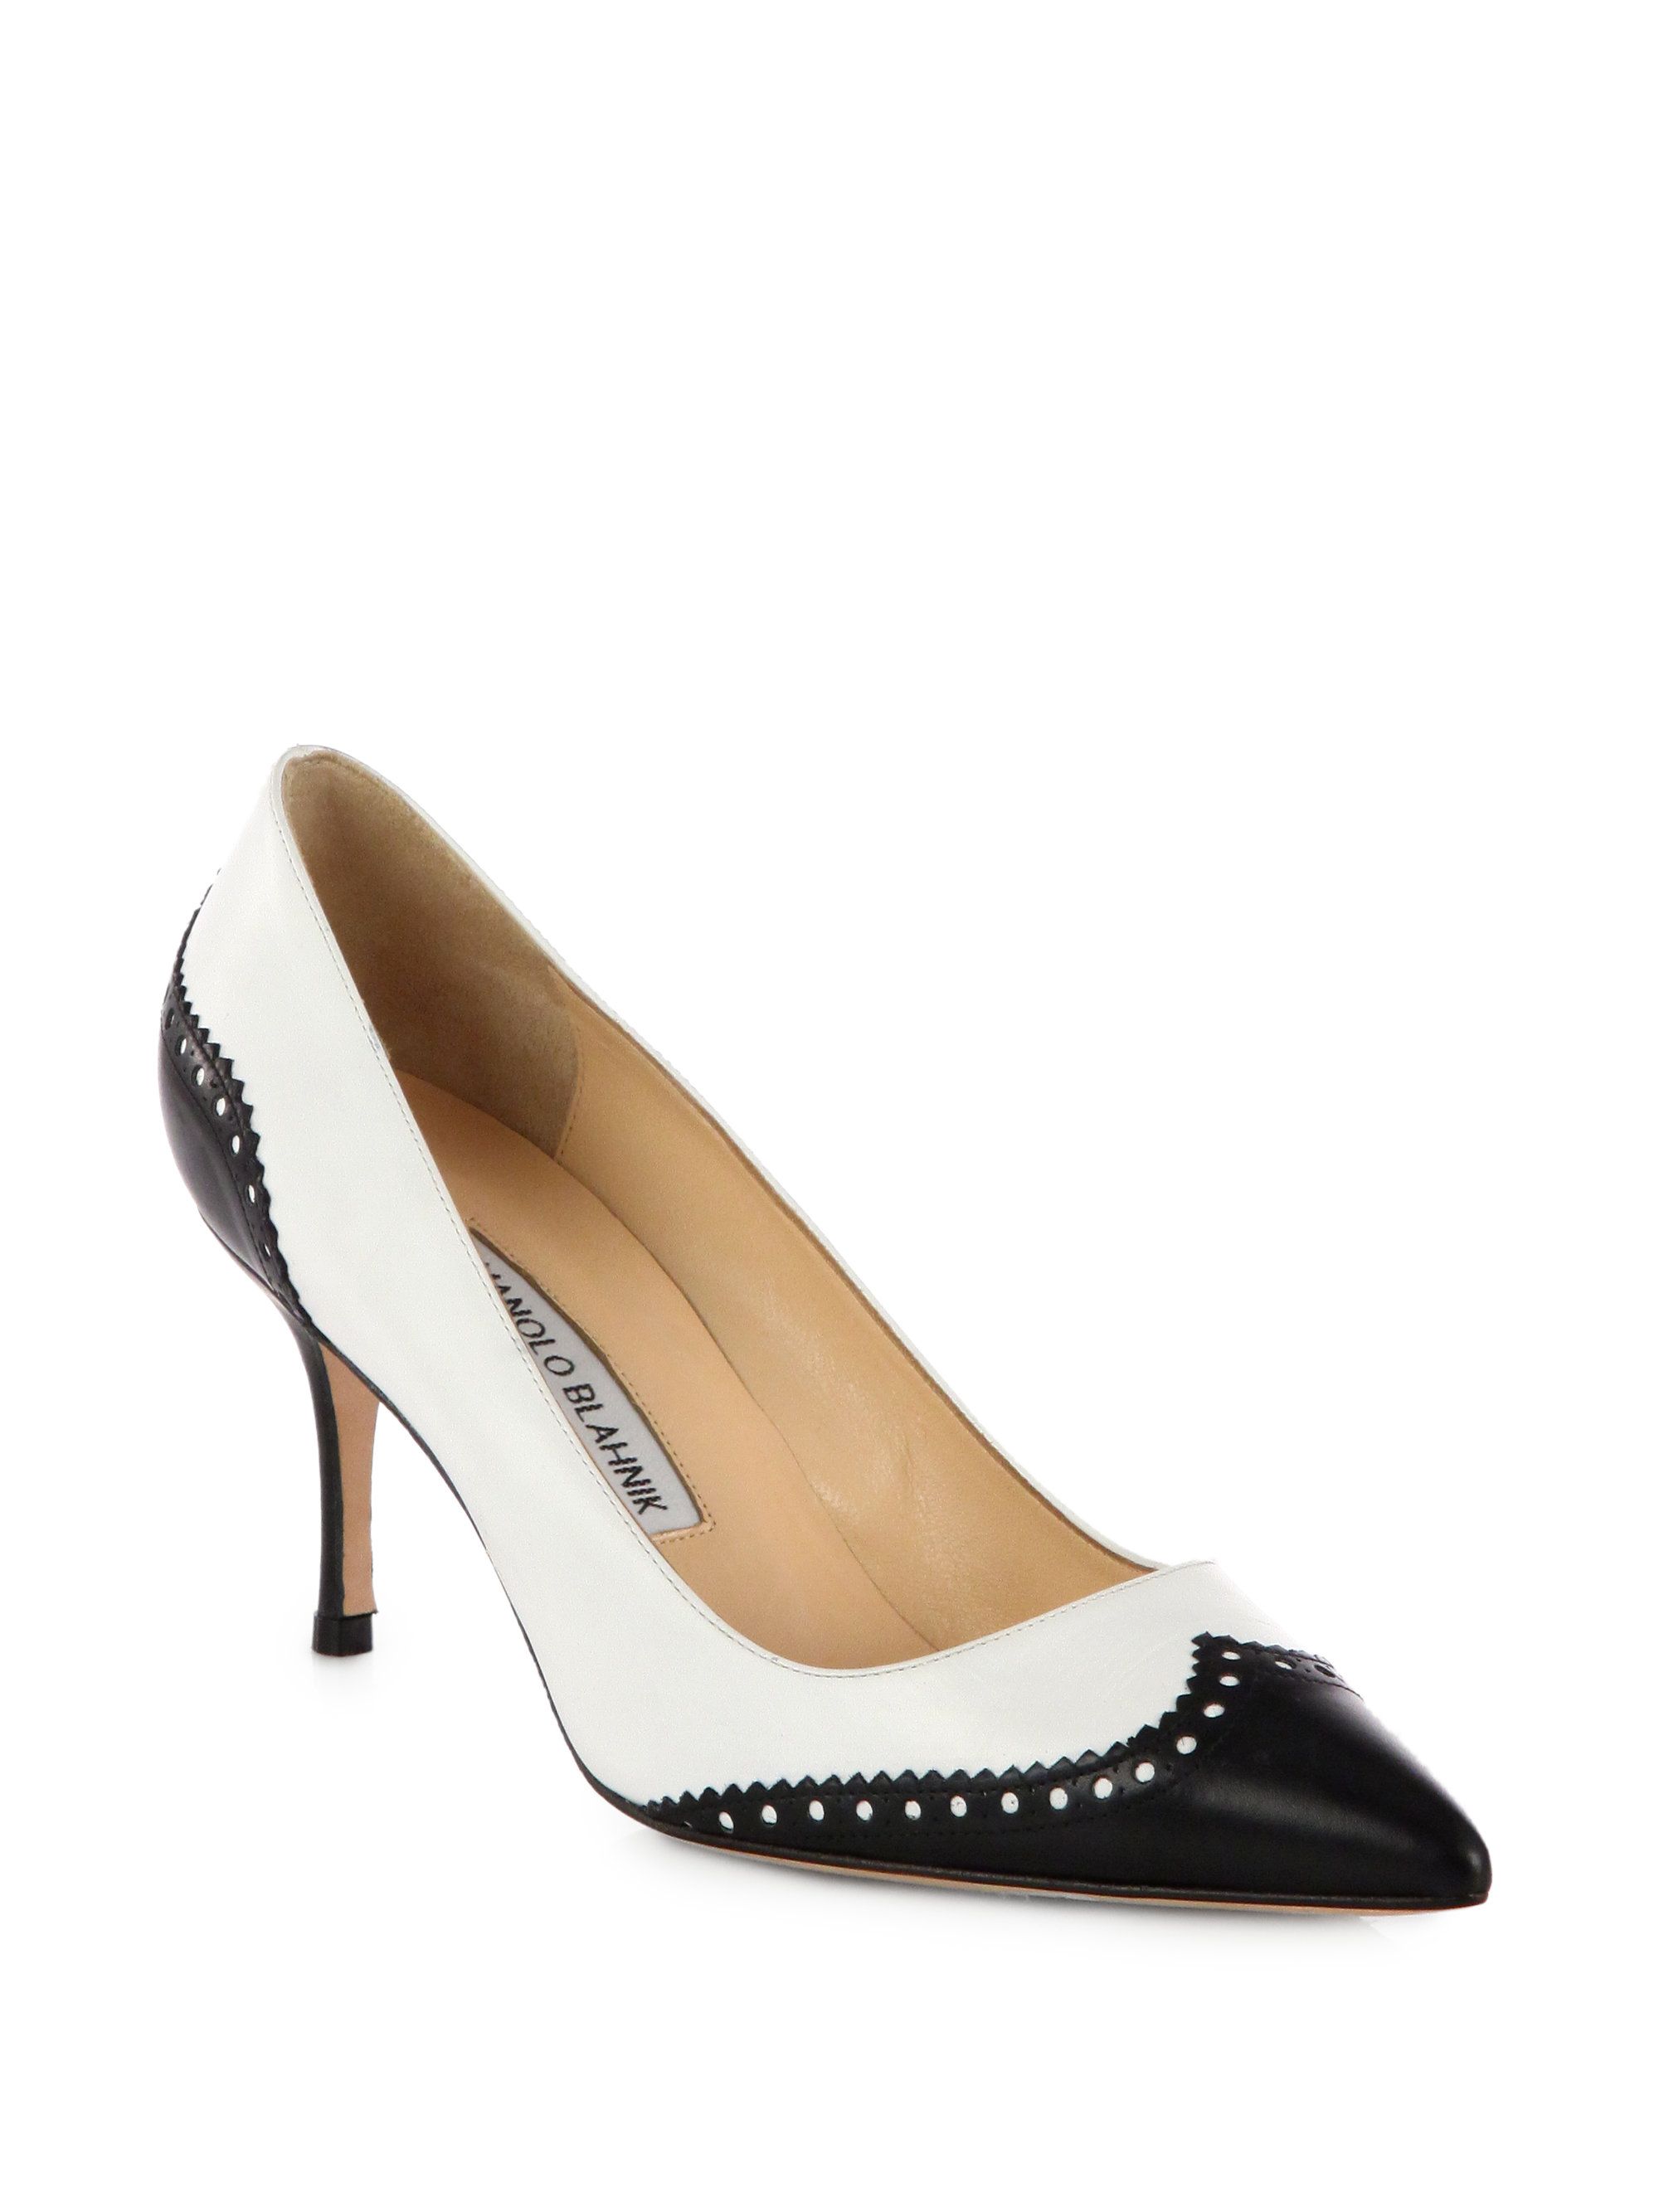 Womens Black And White Leather Shoes